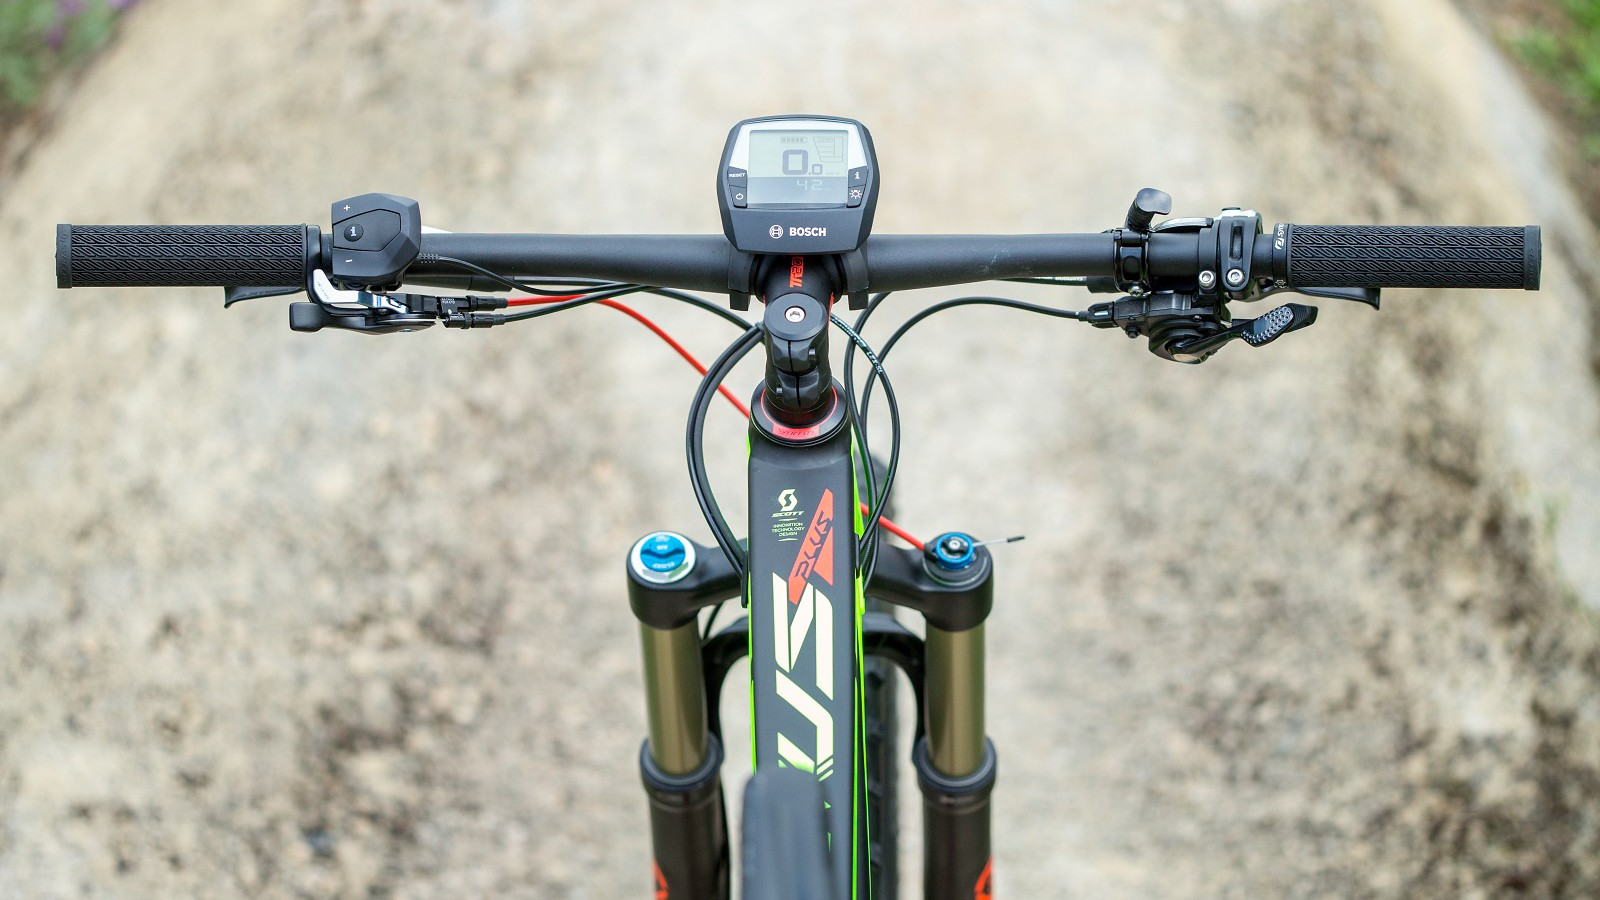 There's plenty to fettle with while you ride, including a the TwinLoc suspension remote and RockShox Reverb remote